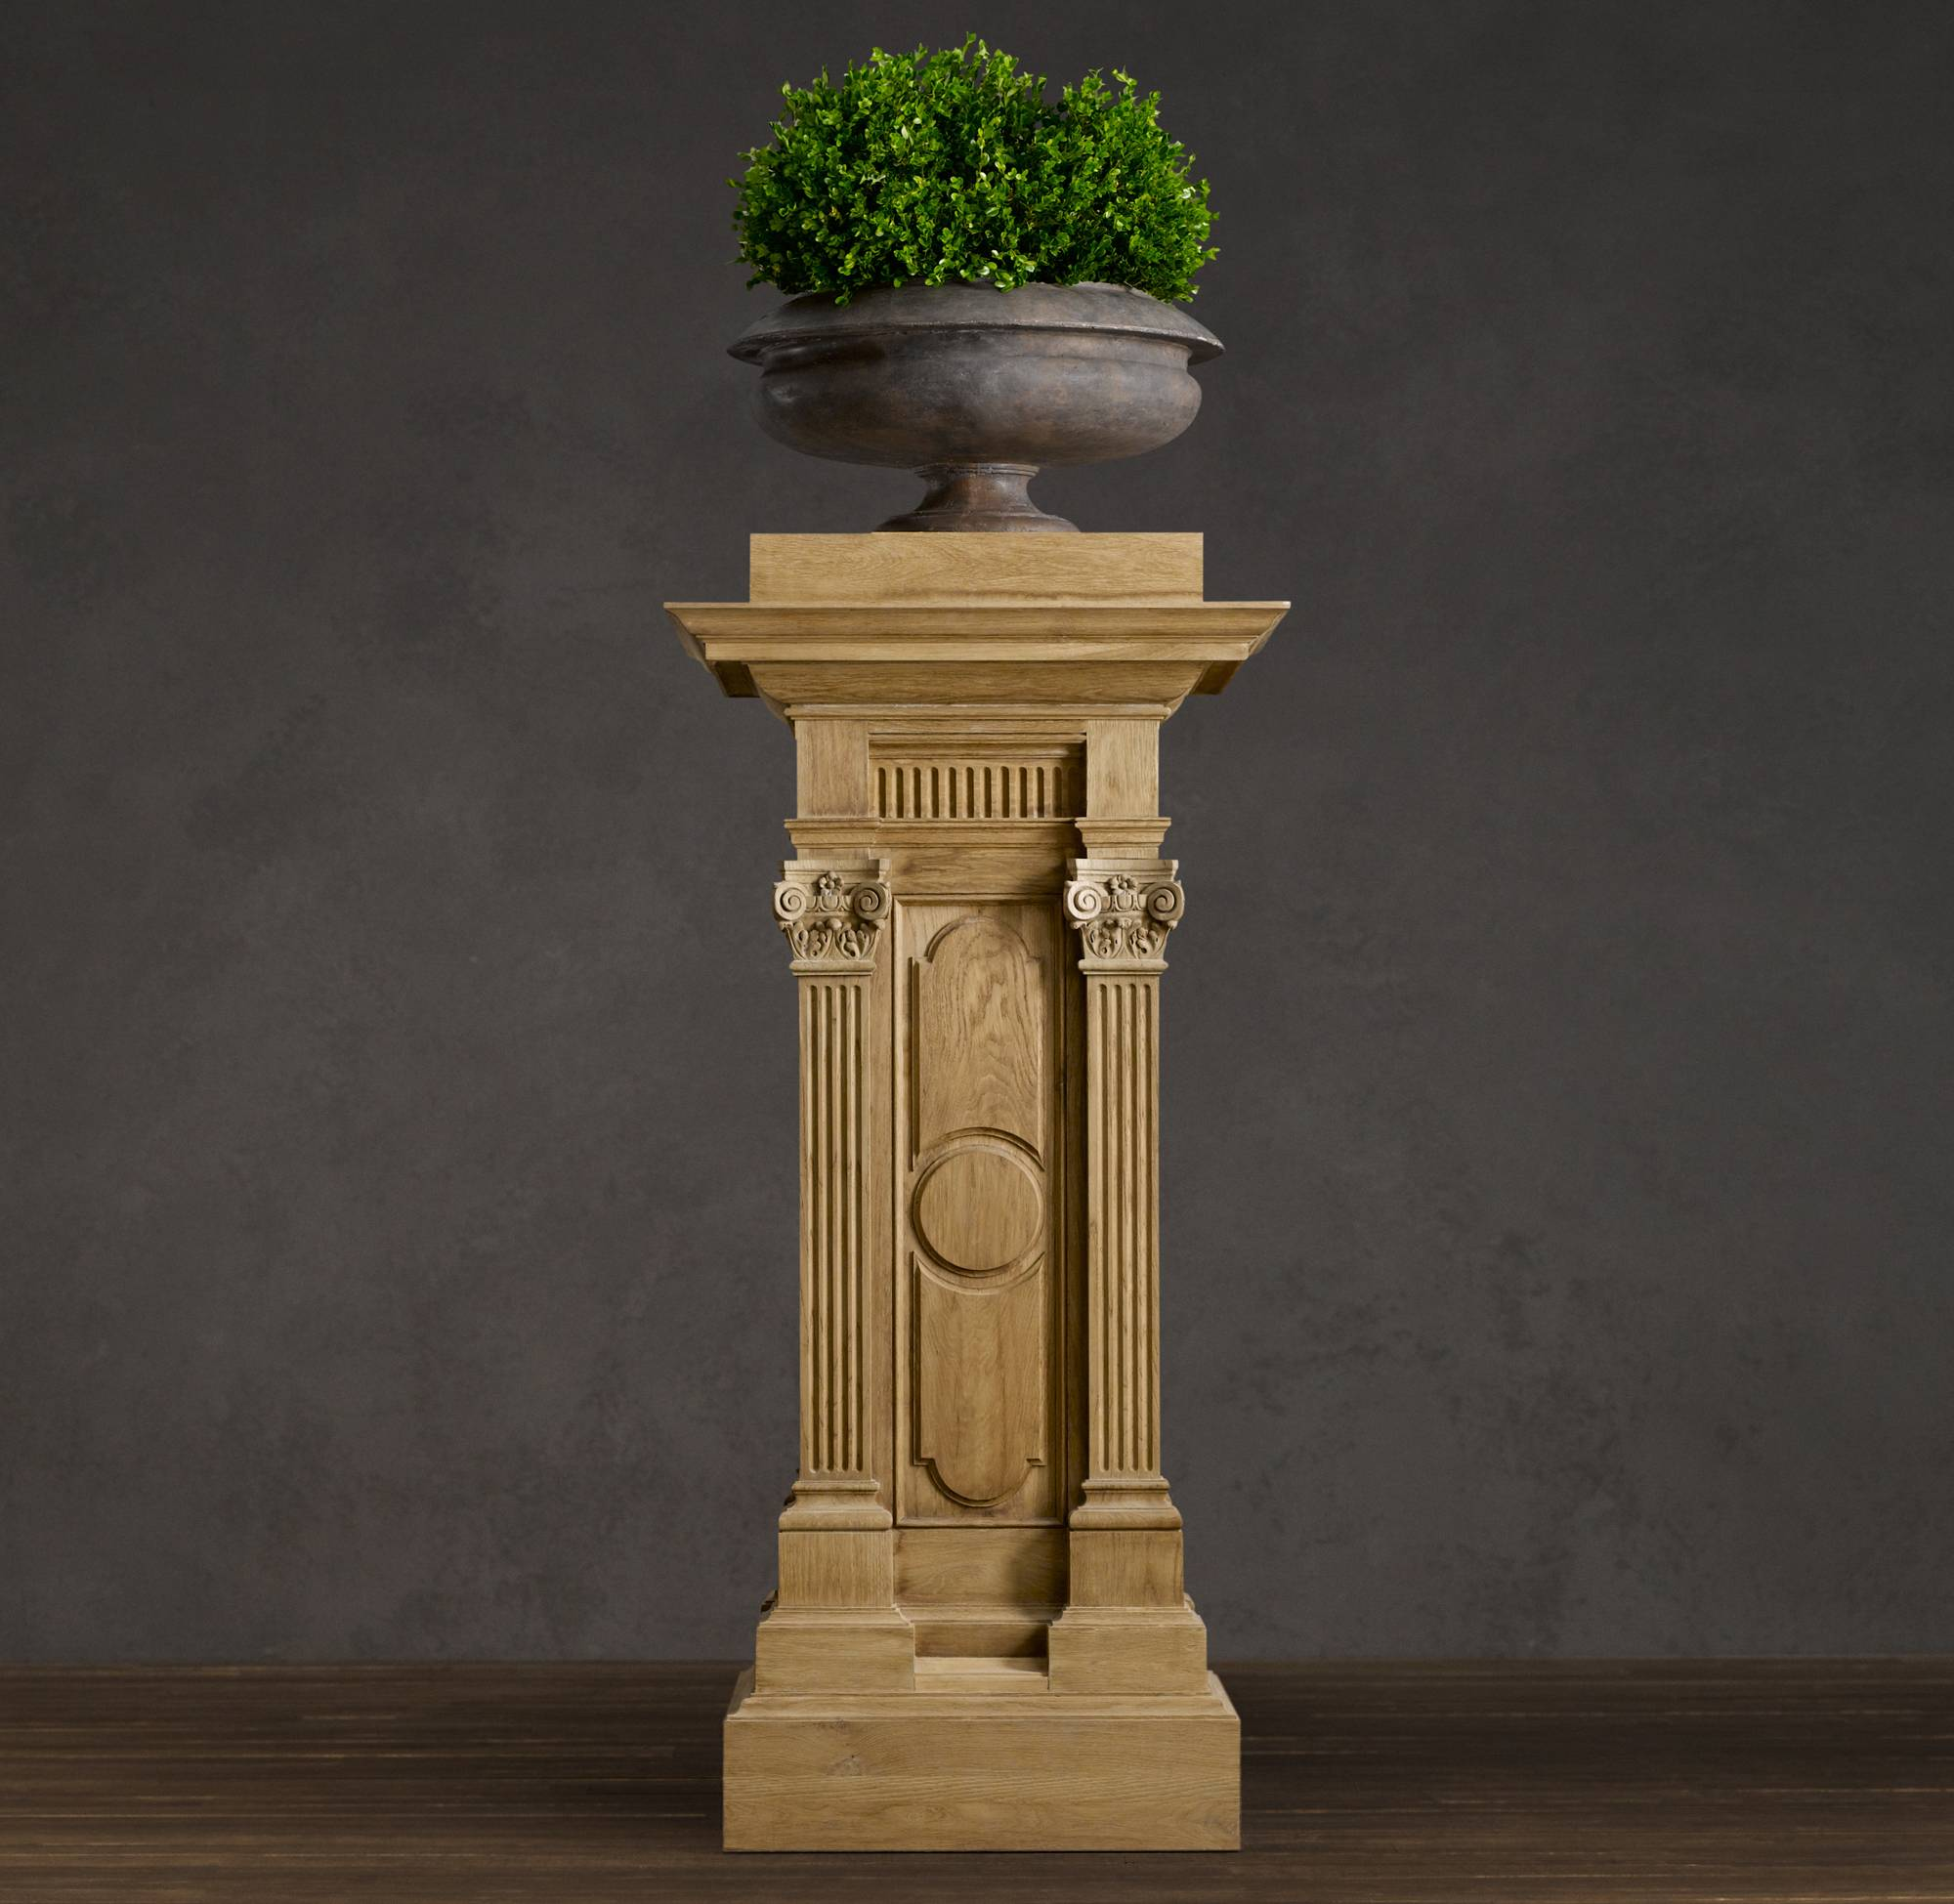 This carved oak plinth makes a statement, and can be used to hold artwork, plants or as a side table.